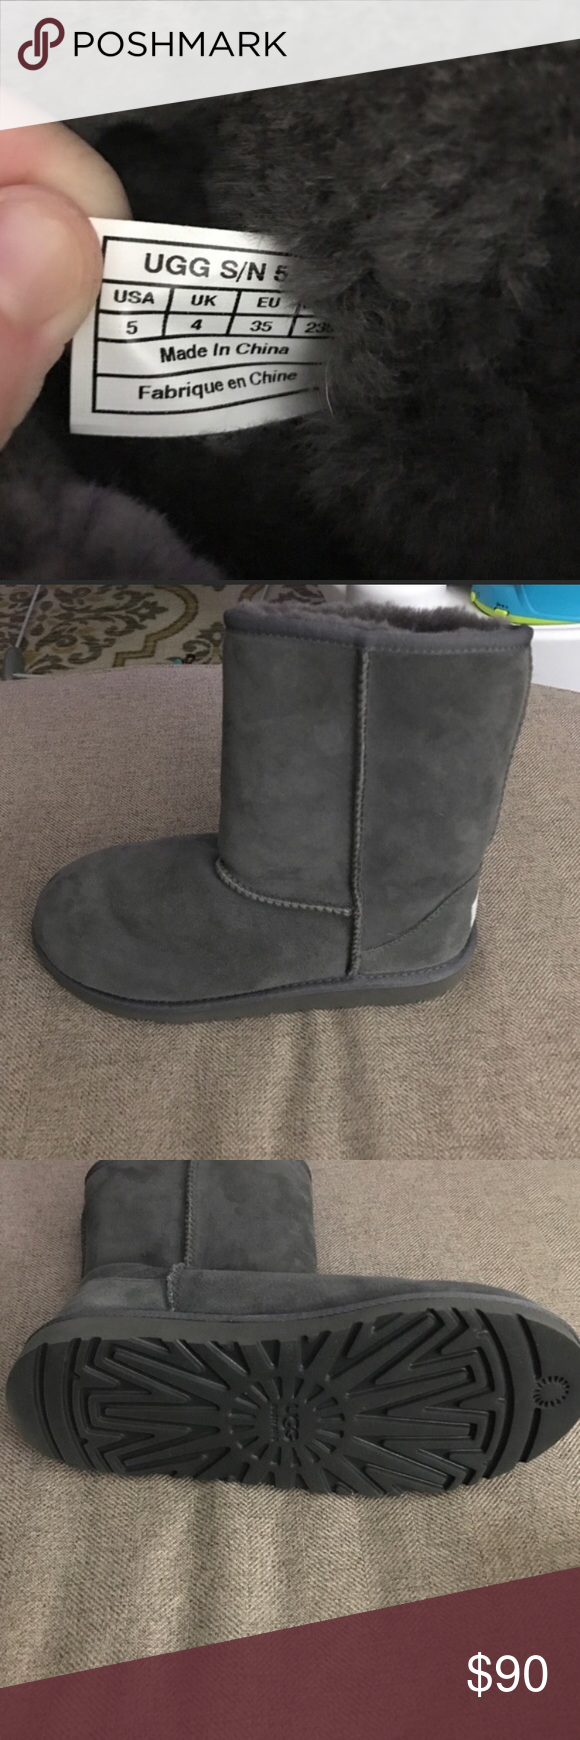 2382ca97859 Gray short uggs Kids size 5 fits womens 6.5-7 Wore it once No box In ...